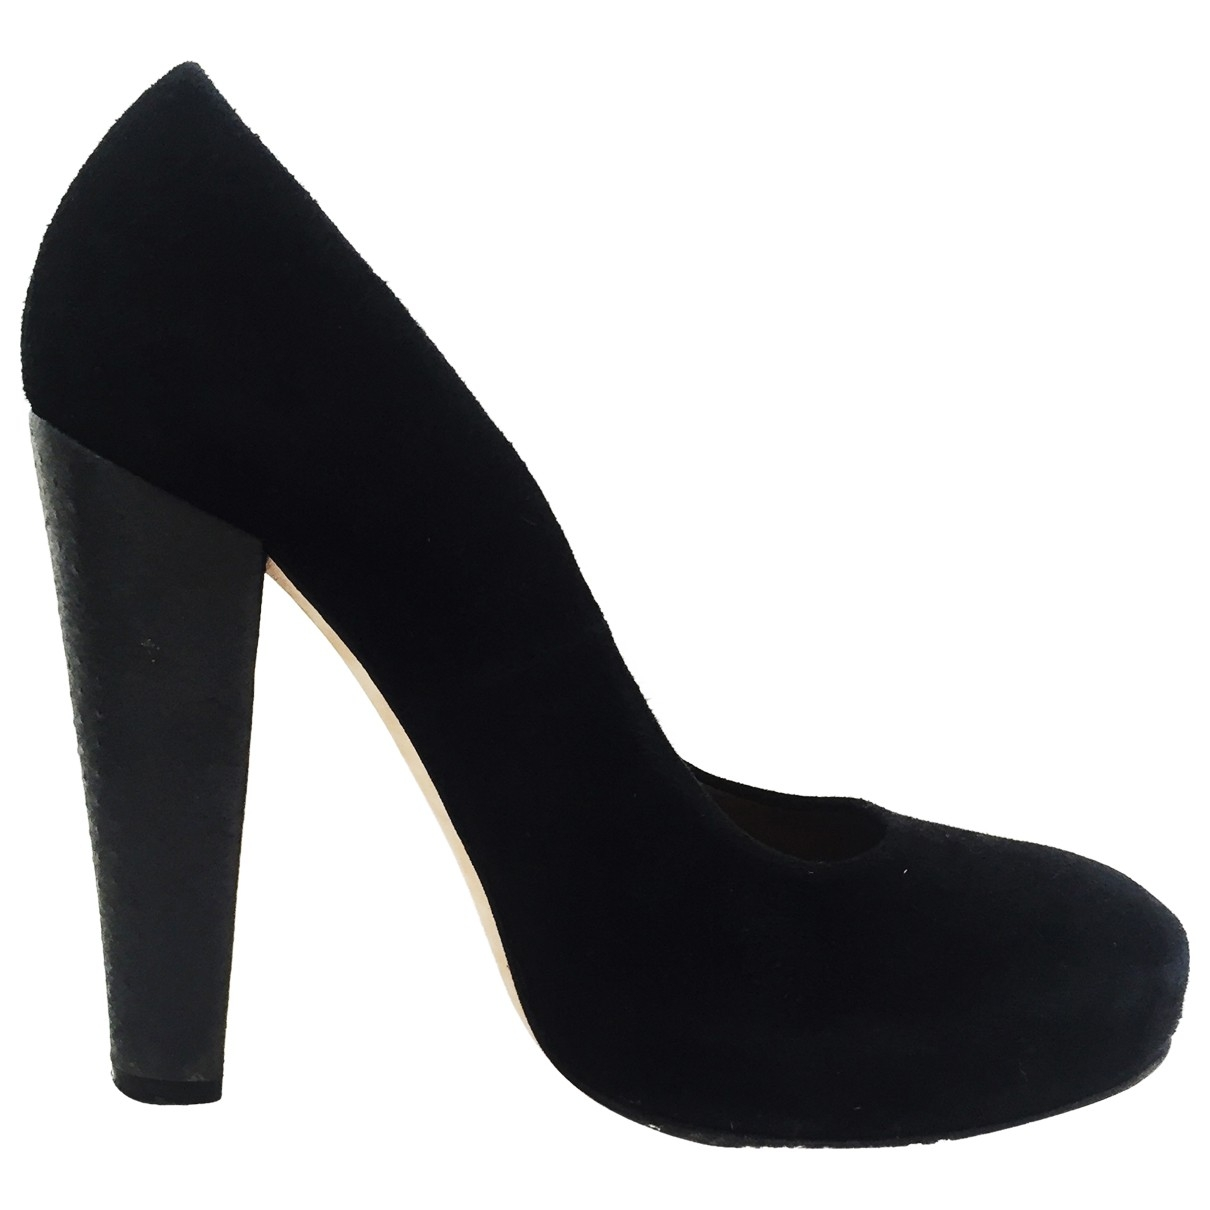 Carven \N Black Suede Heels for Women 38 EU